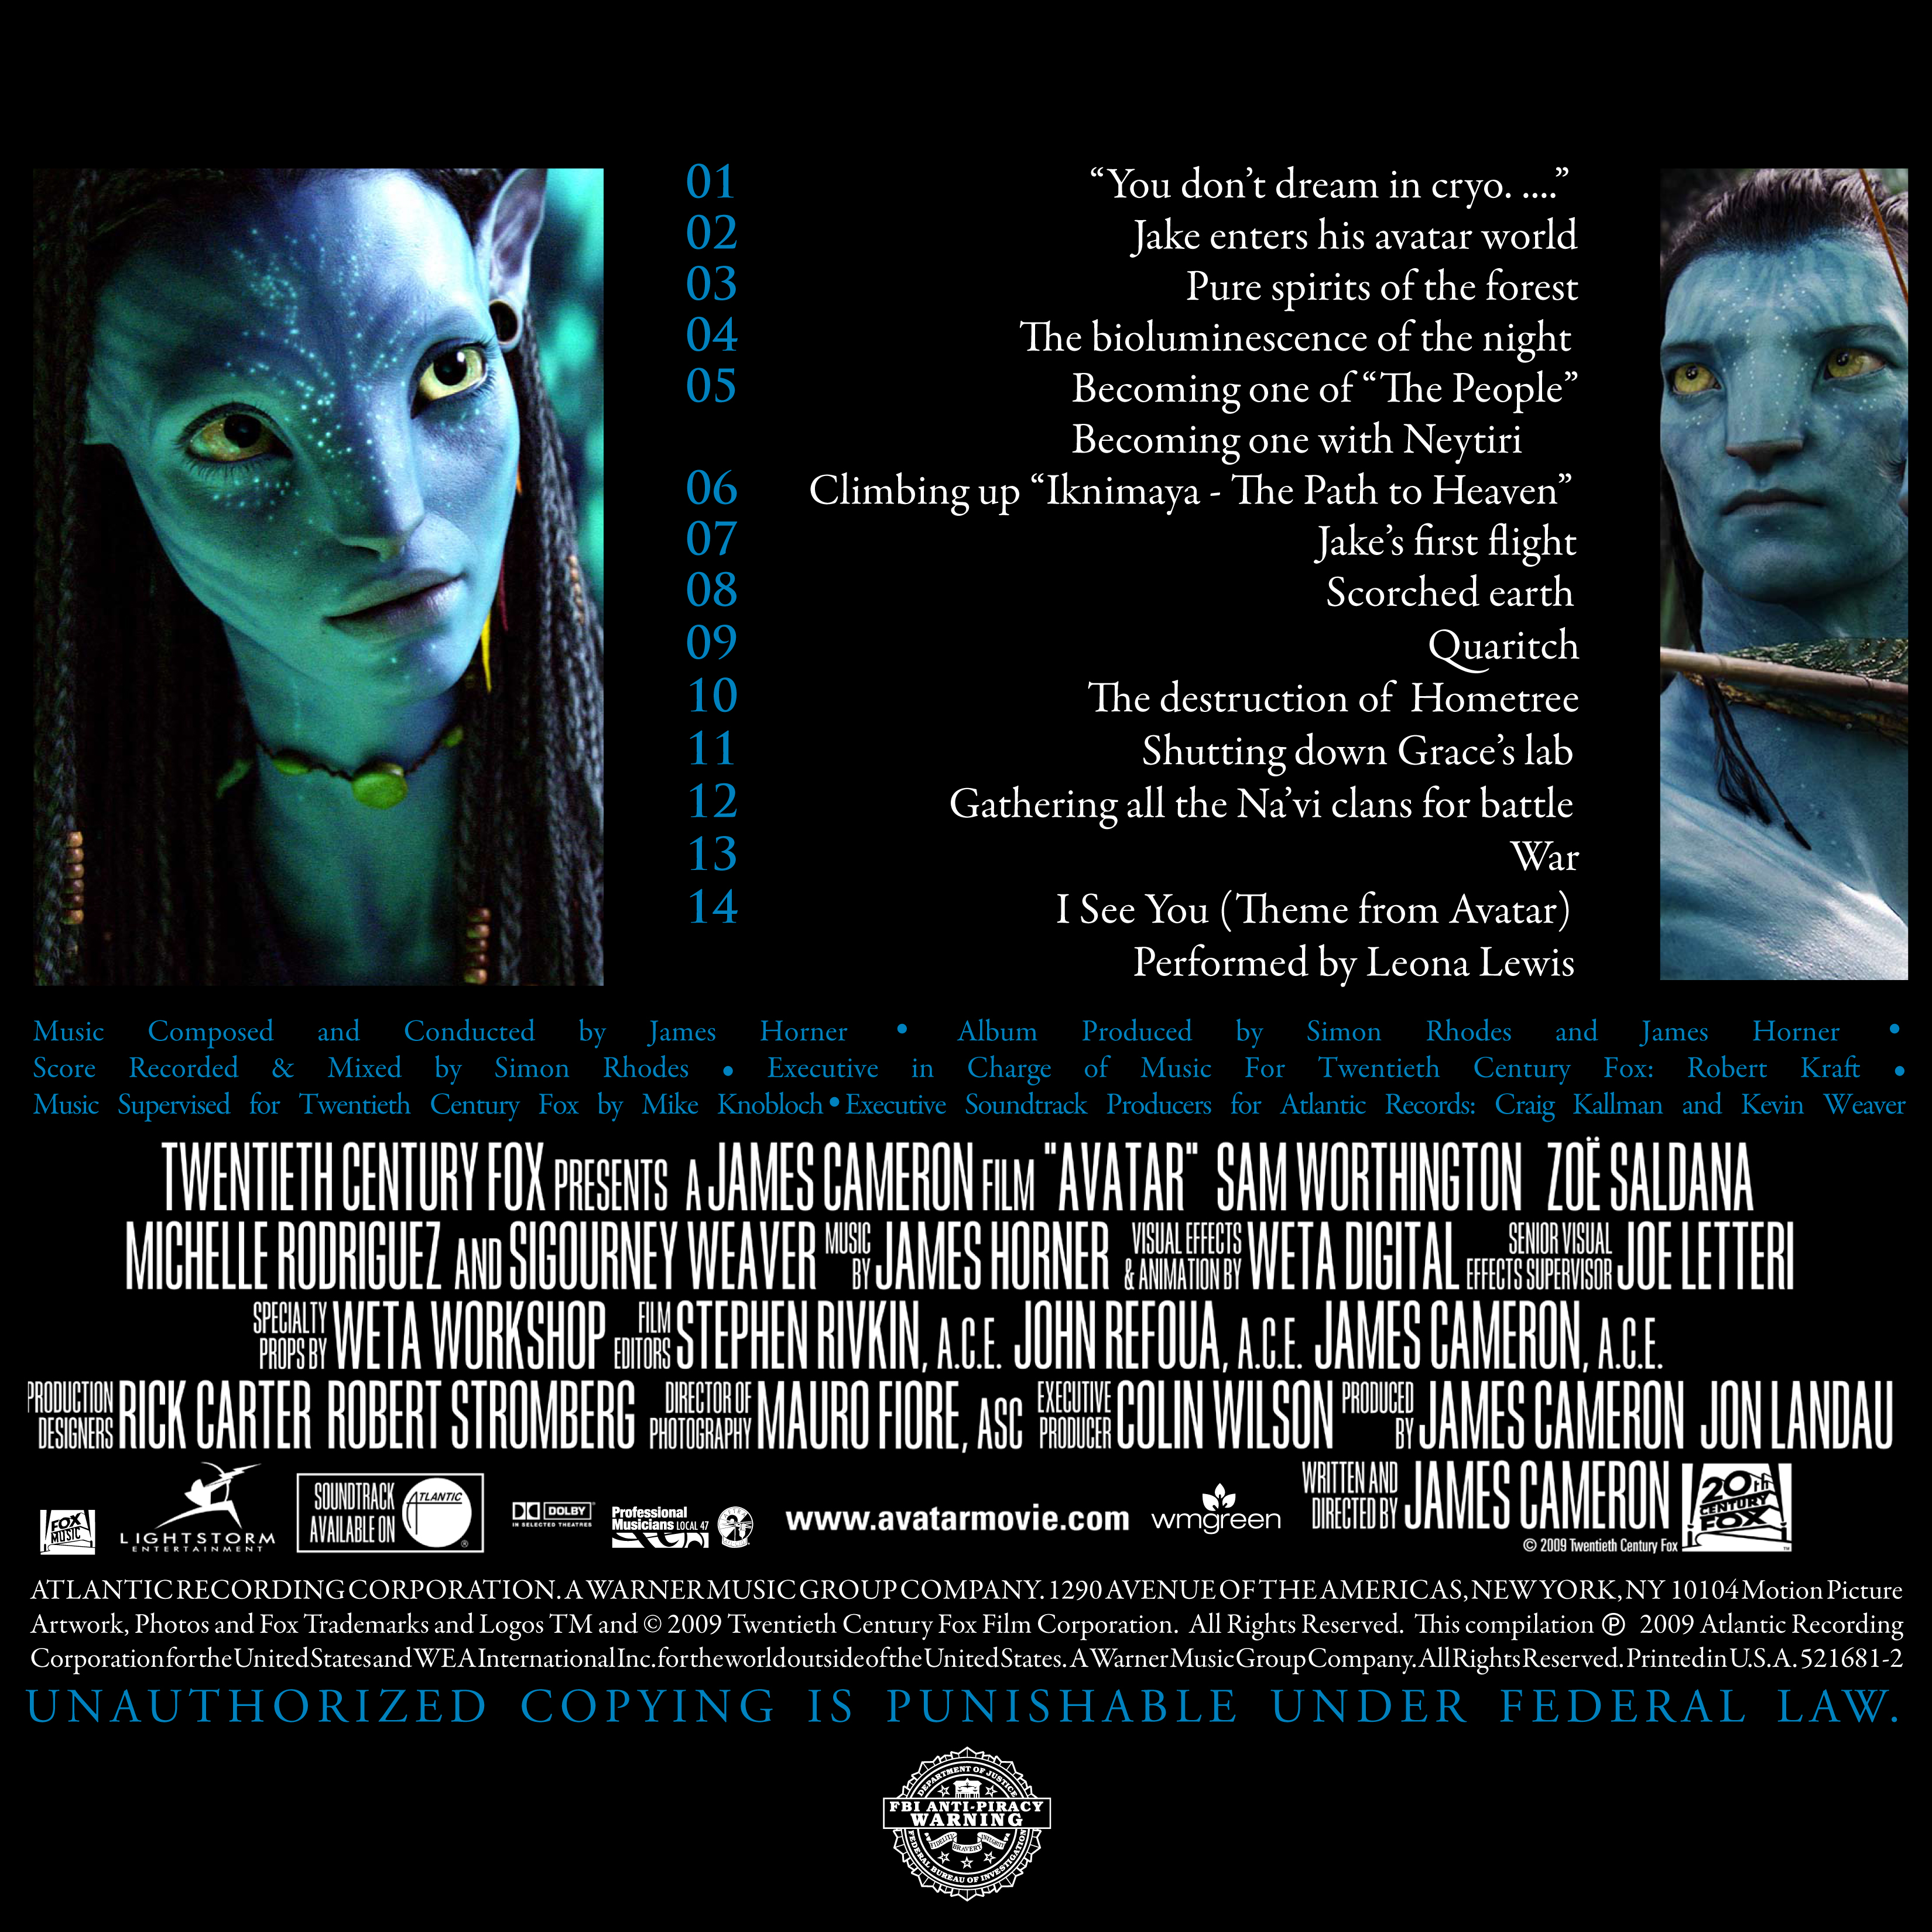 Avatar: Music from the Motion Picture - James Cameron's Avatar Wiki ...: james-camerons-avatar.wikia.com/wiki/Avatar:_Music_from_the_Motion...